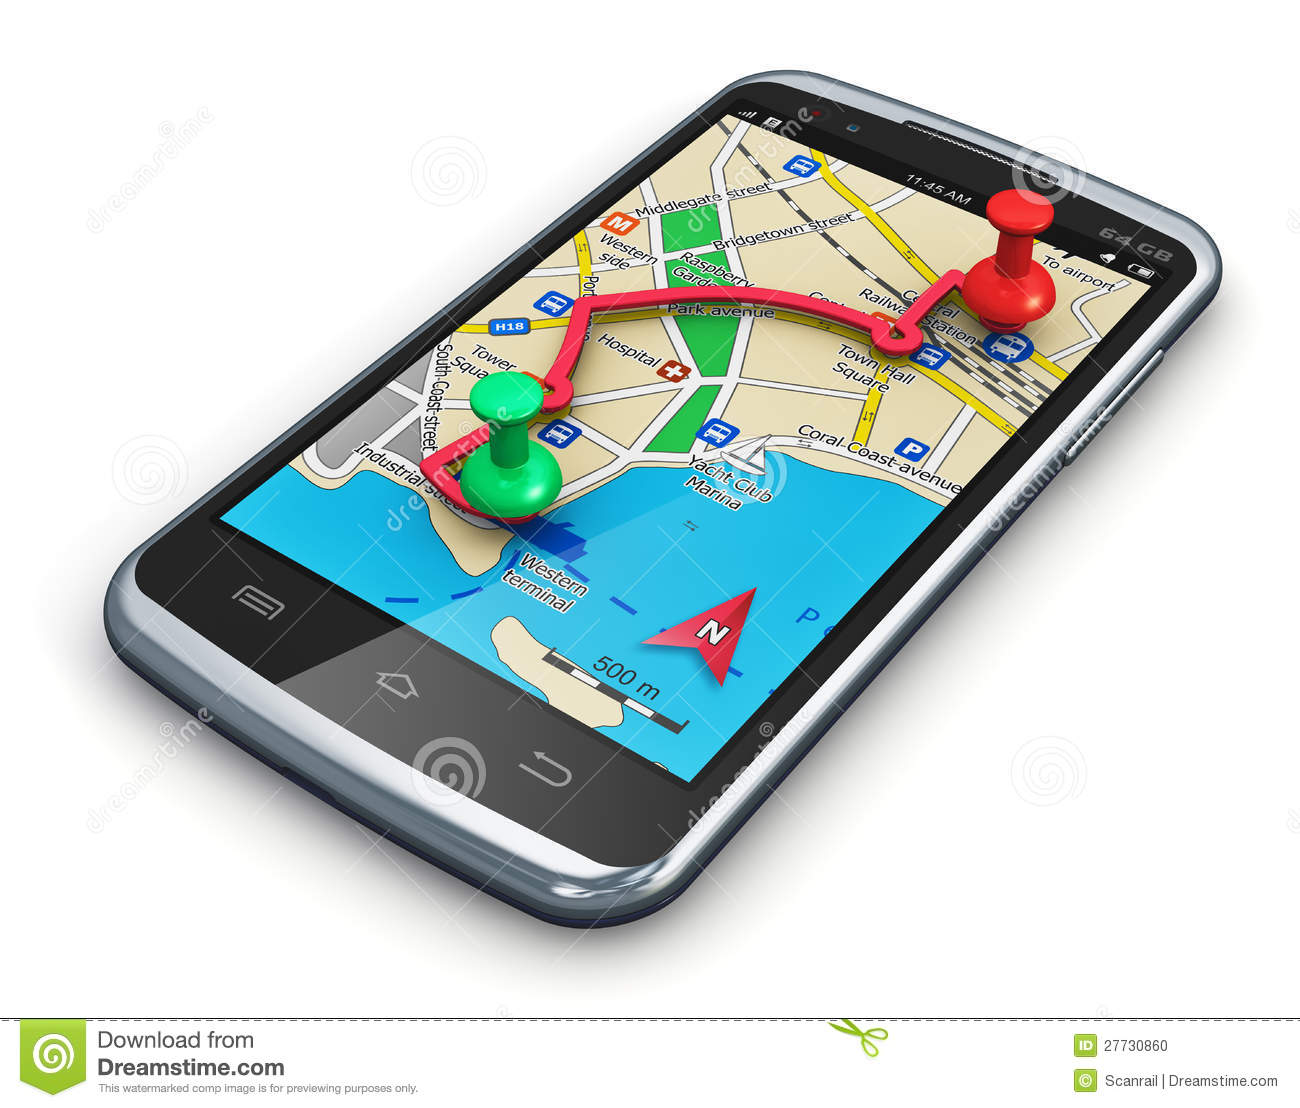 How To Track A Cell Phone Number On Google Map ✓ The GMC Car Google Map Gps Cell Phone Tracker on